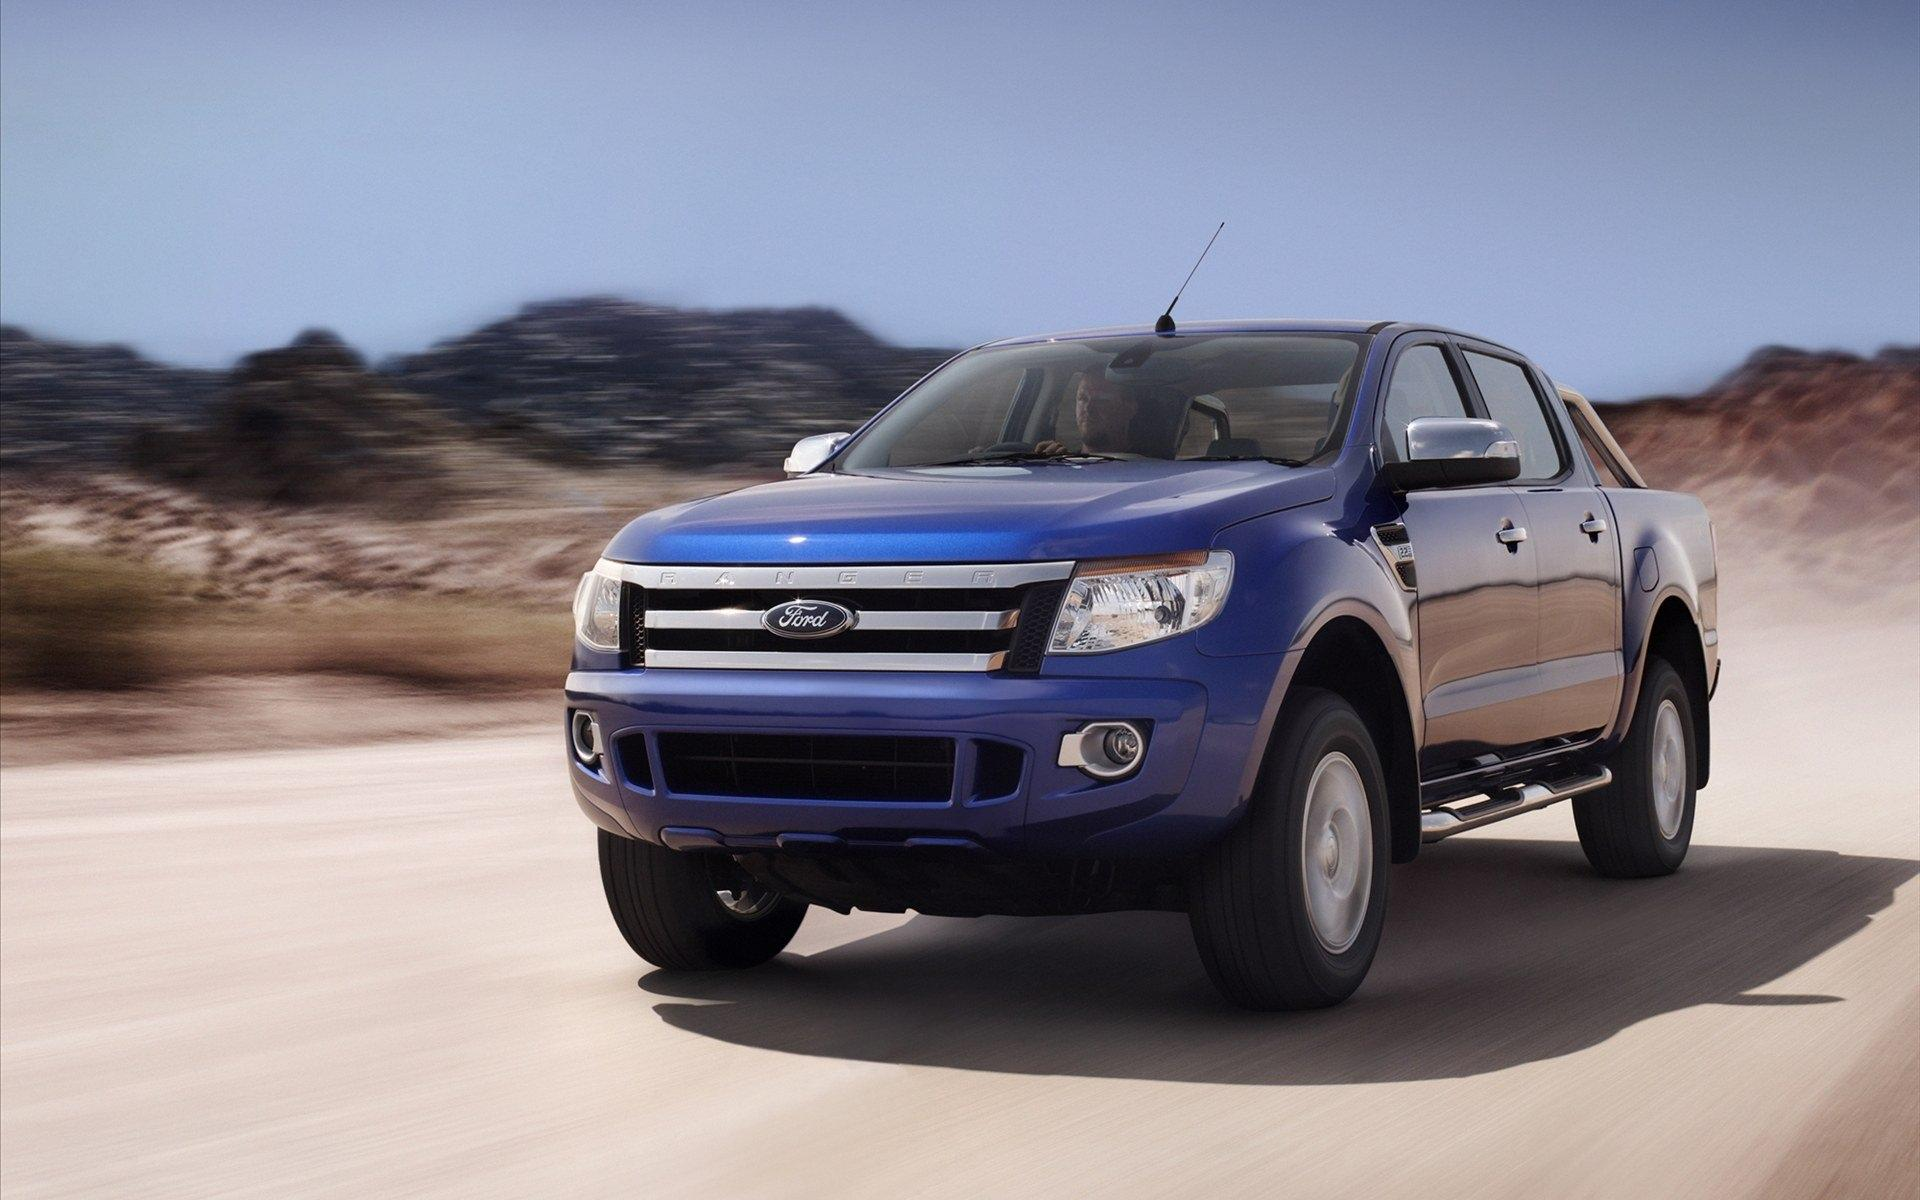 Ford Ranger wallpapers HD quality